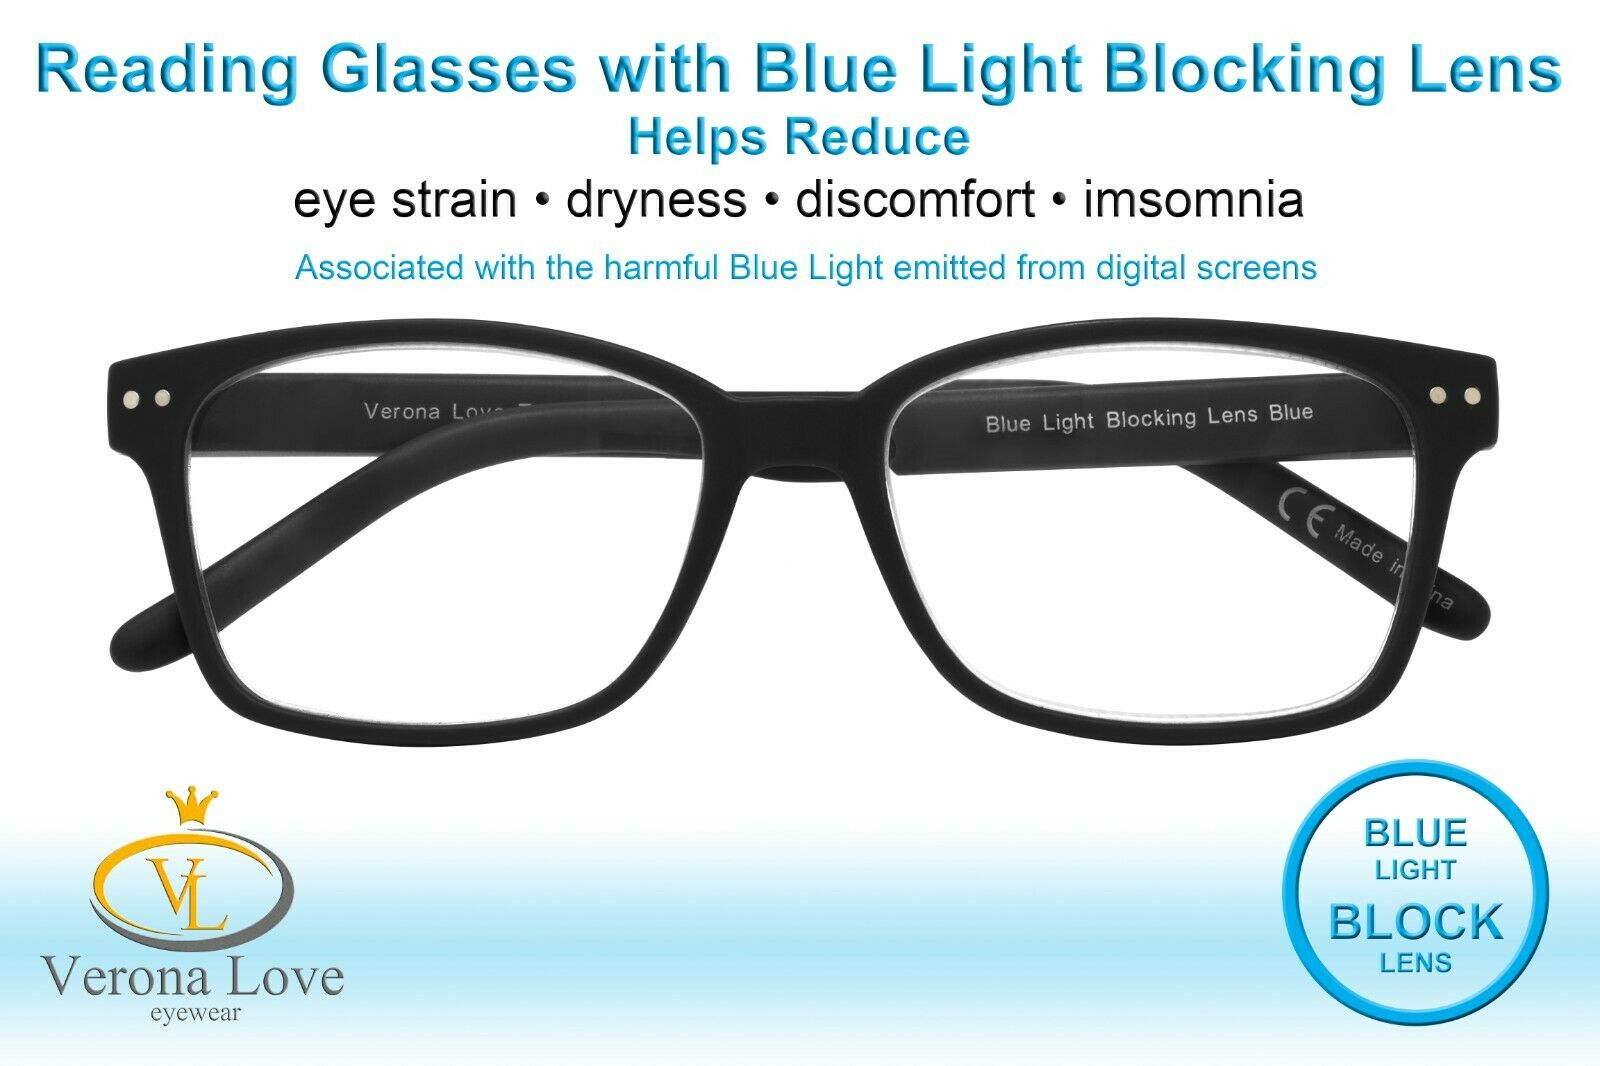 TRELEW Blue Light Blocking Lenses Computer Reading Glasses Unisex +0.50 Black - Blue Light Blocking Eyewear